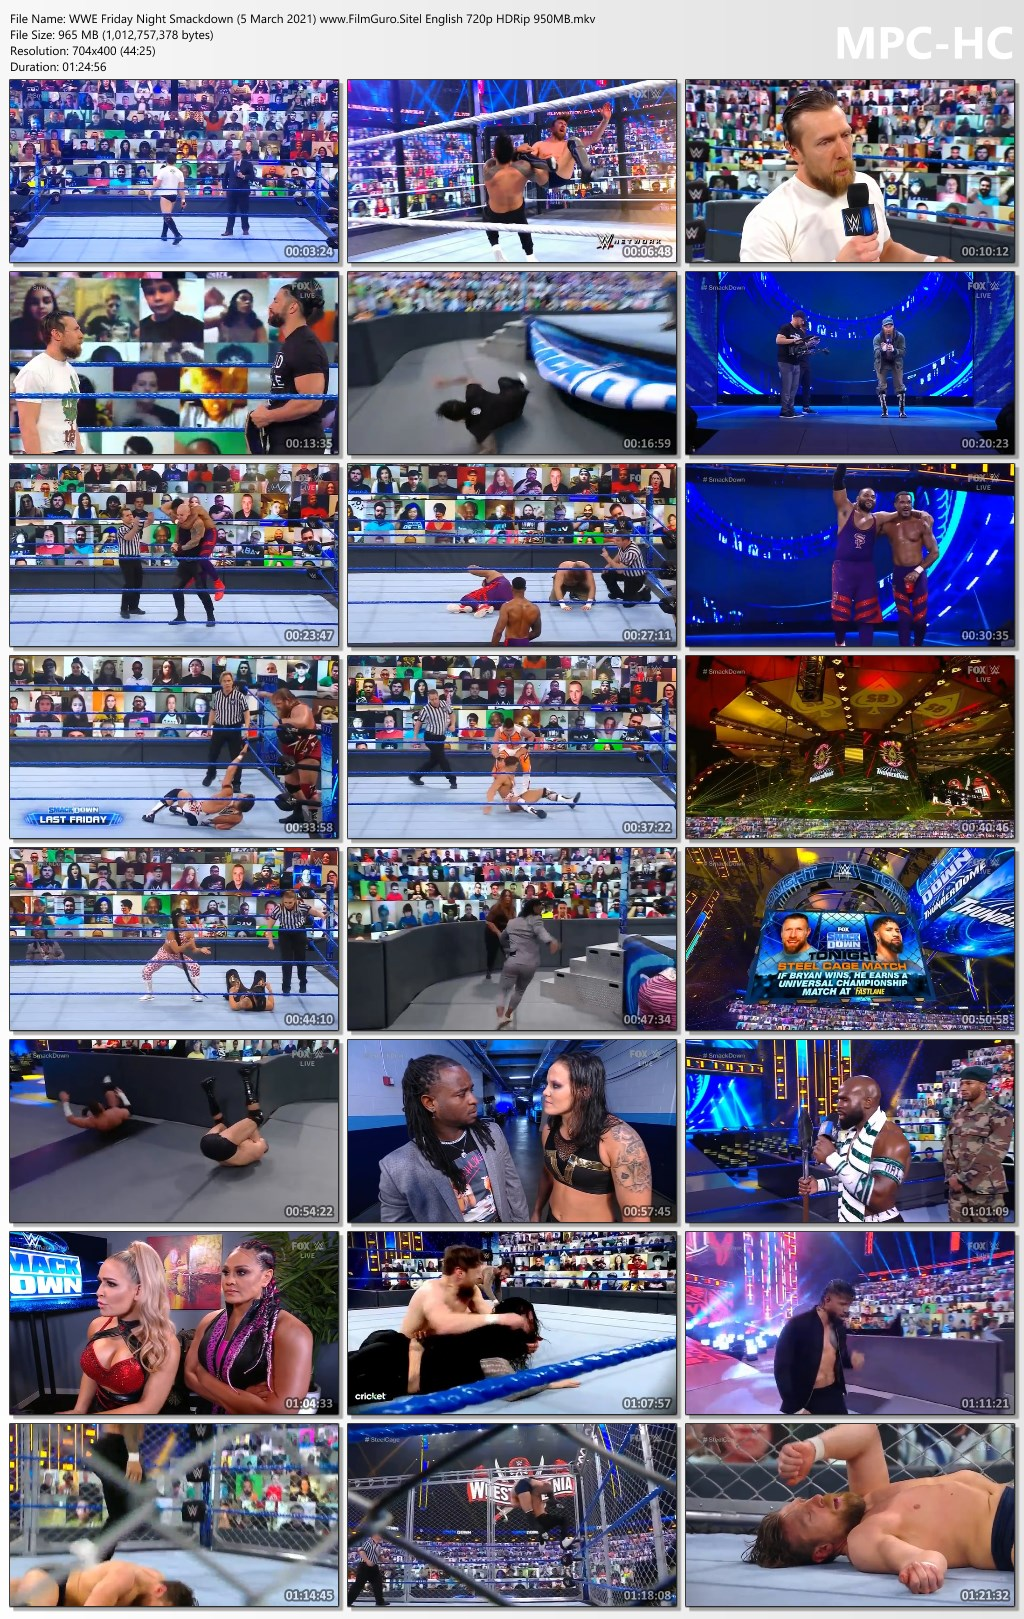 WWE-Friday-Night-Smackdown-5-March-2021-www-Film-Guro-Sitel-English-720p-HDRip-950-MB-mkv-thumbs